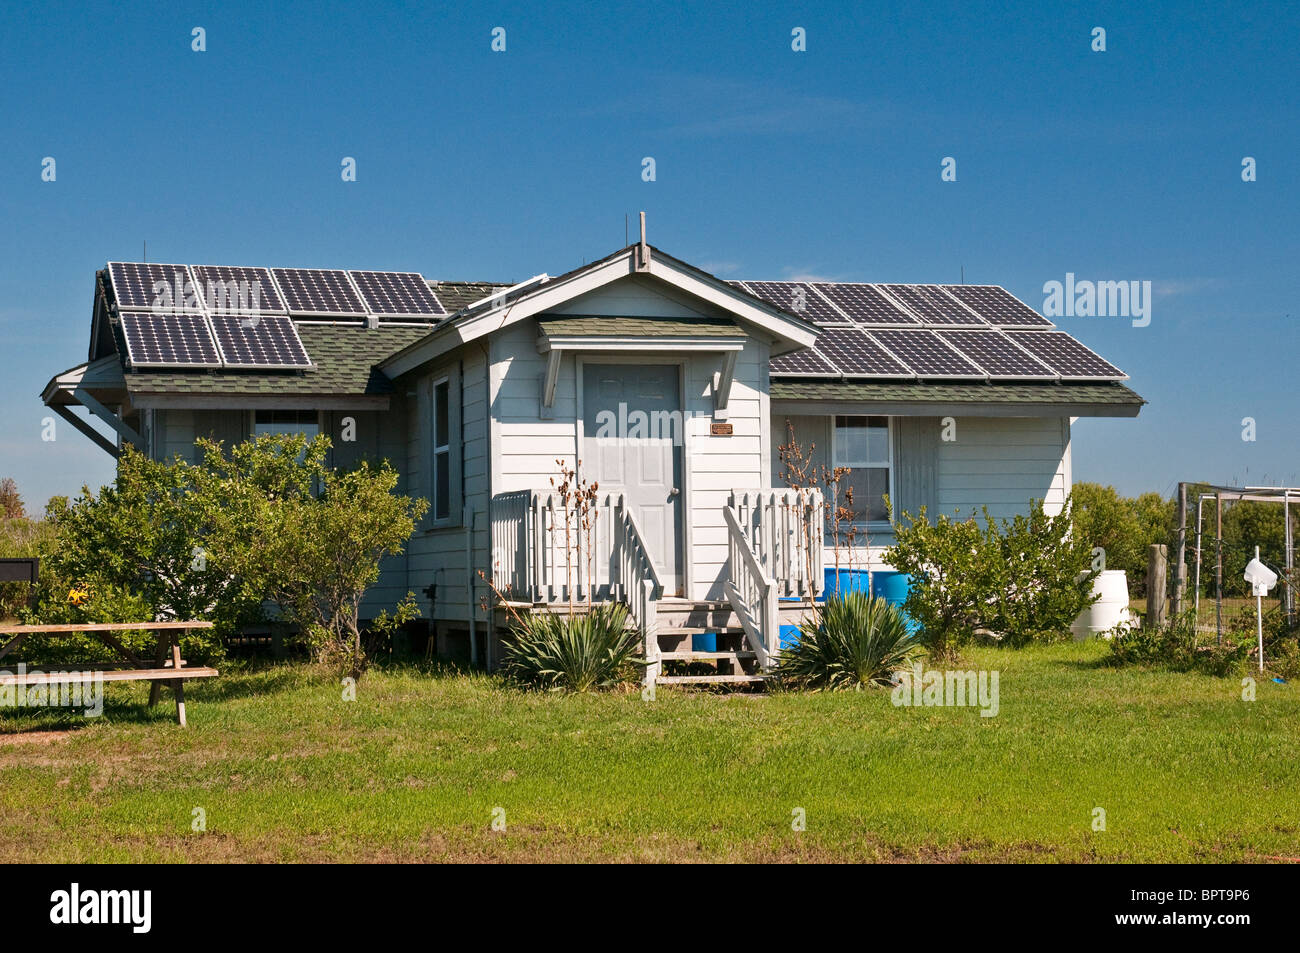 Beach house with photovoltaic solar panels - Stock Image